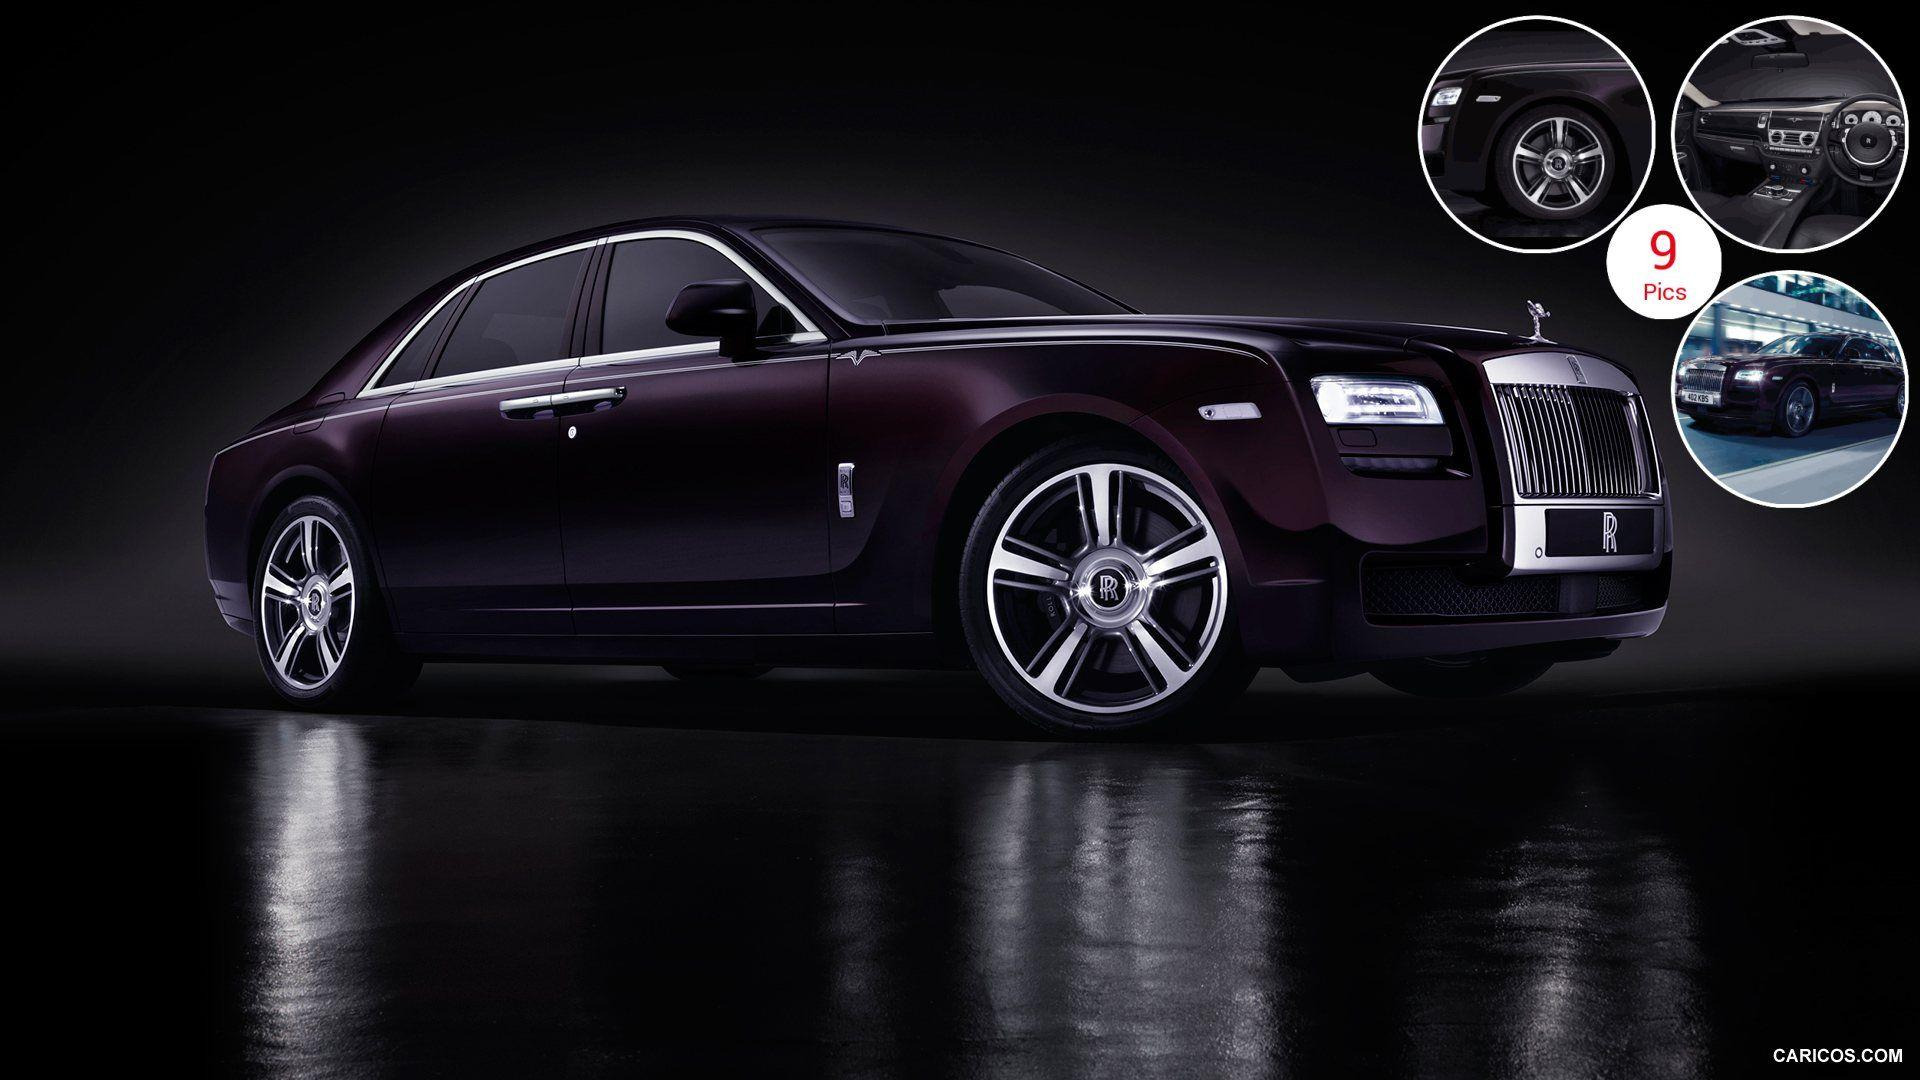 2015 Rolls-Royce Ghost V-Specification - Front | HD Wallpaper #4